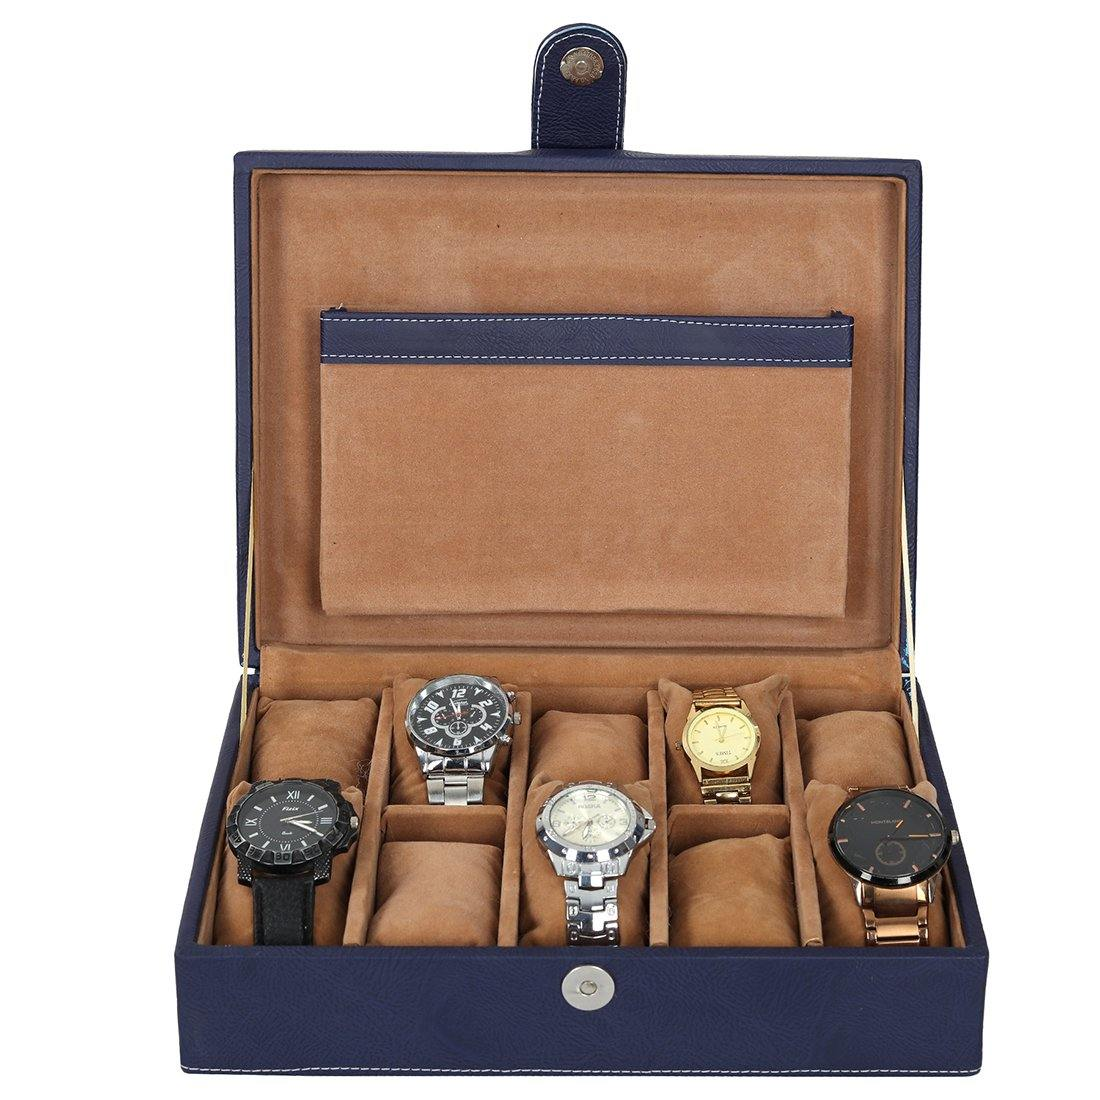 Leather World PU Leather Watch Box | 10 Slots